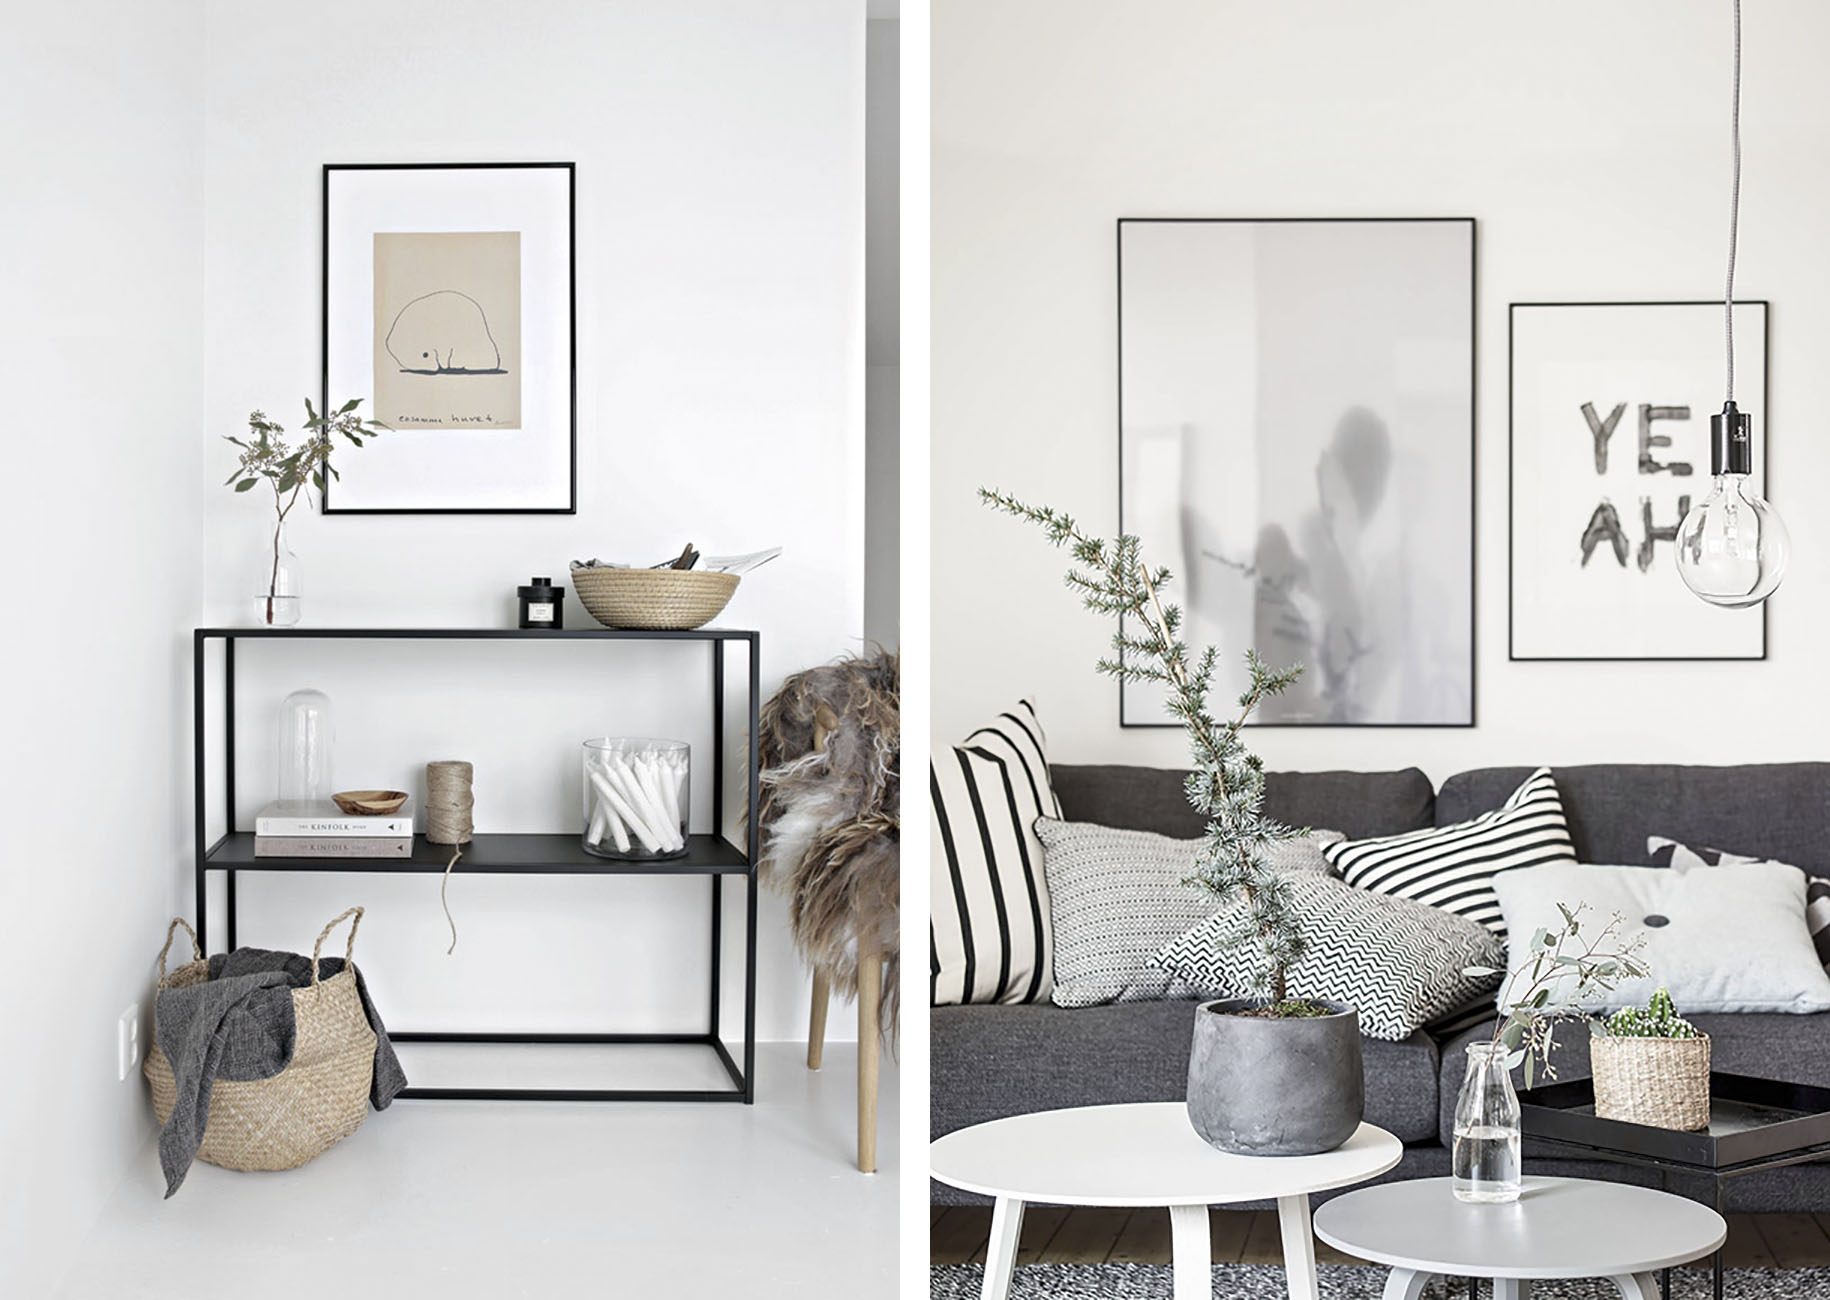 Scandinavian interiors with natural materials - Top 10 tips for adding  Scandinavian style to your home